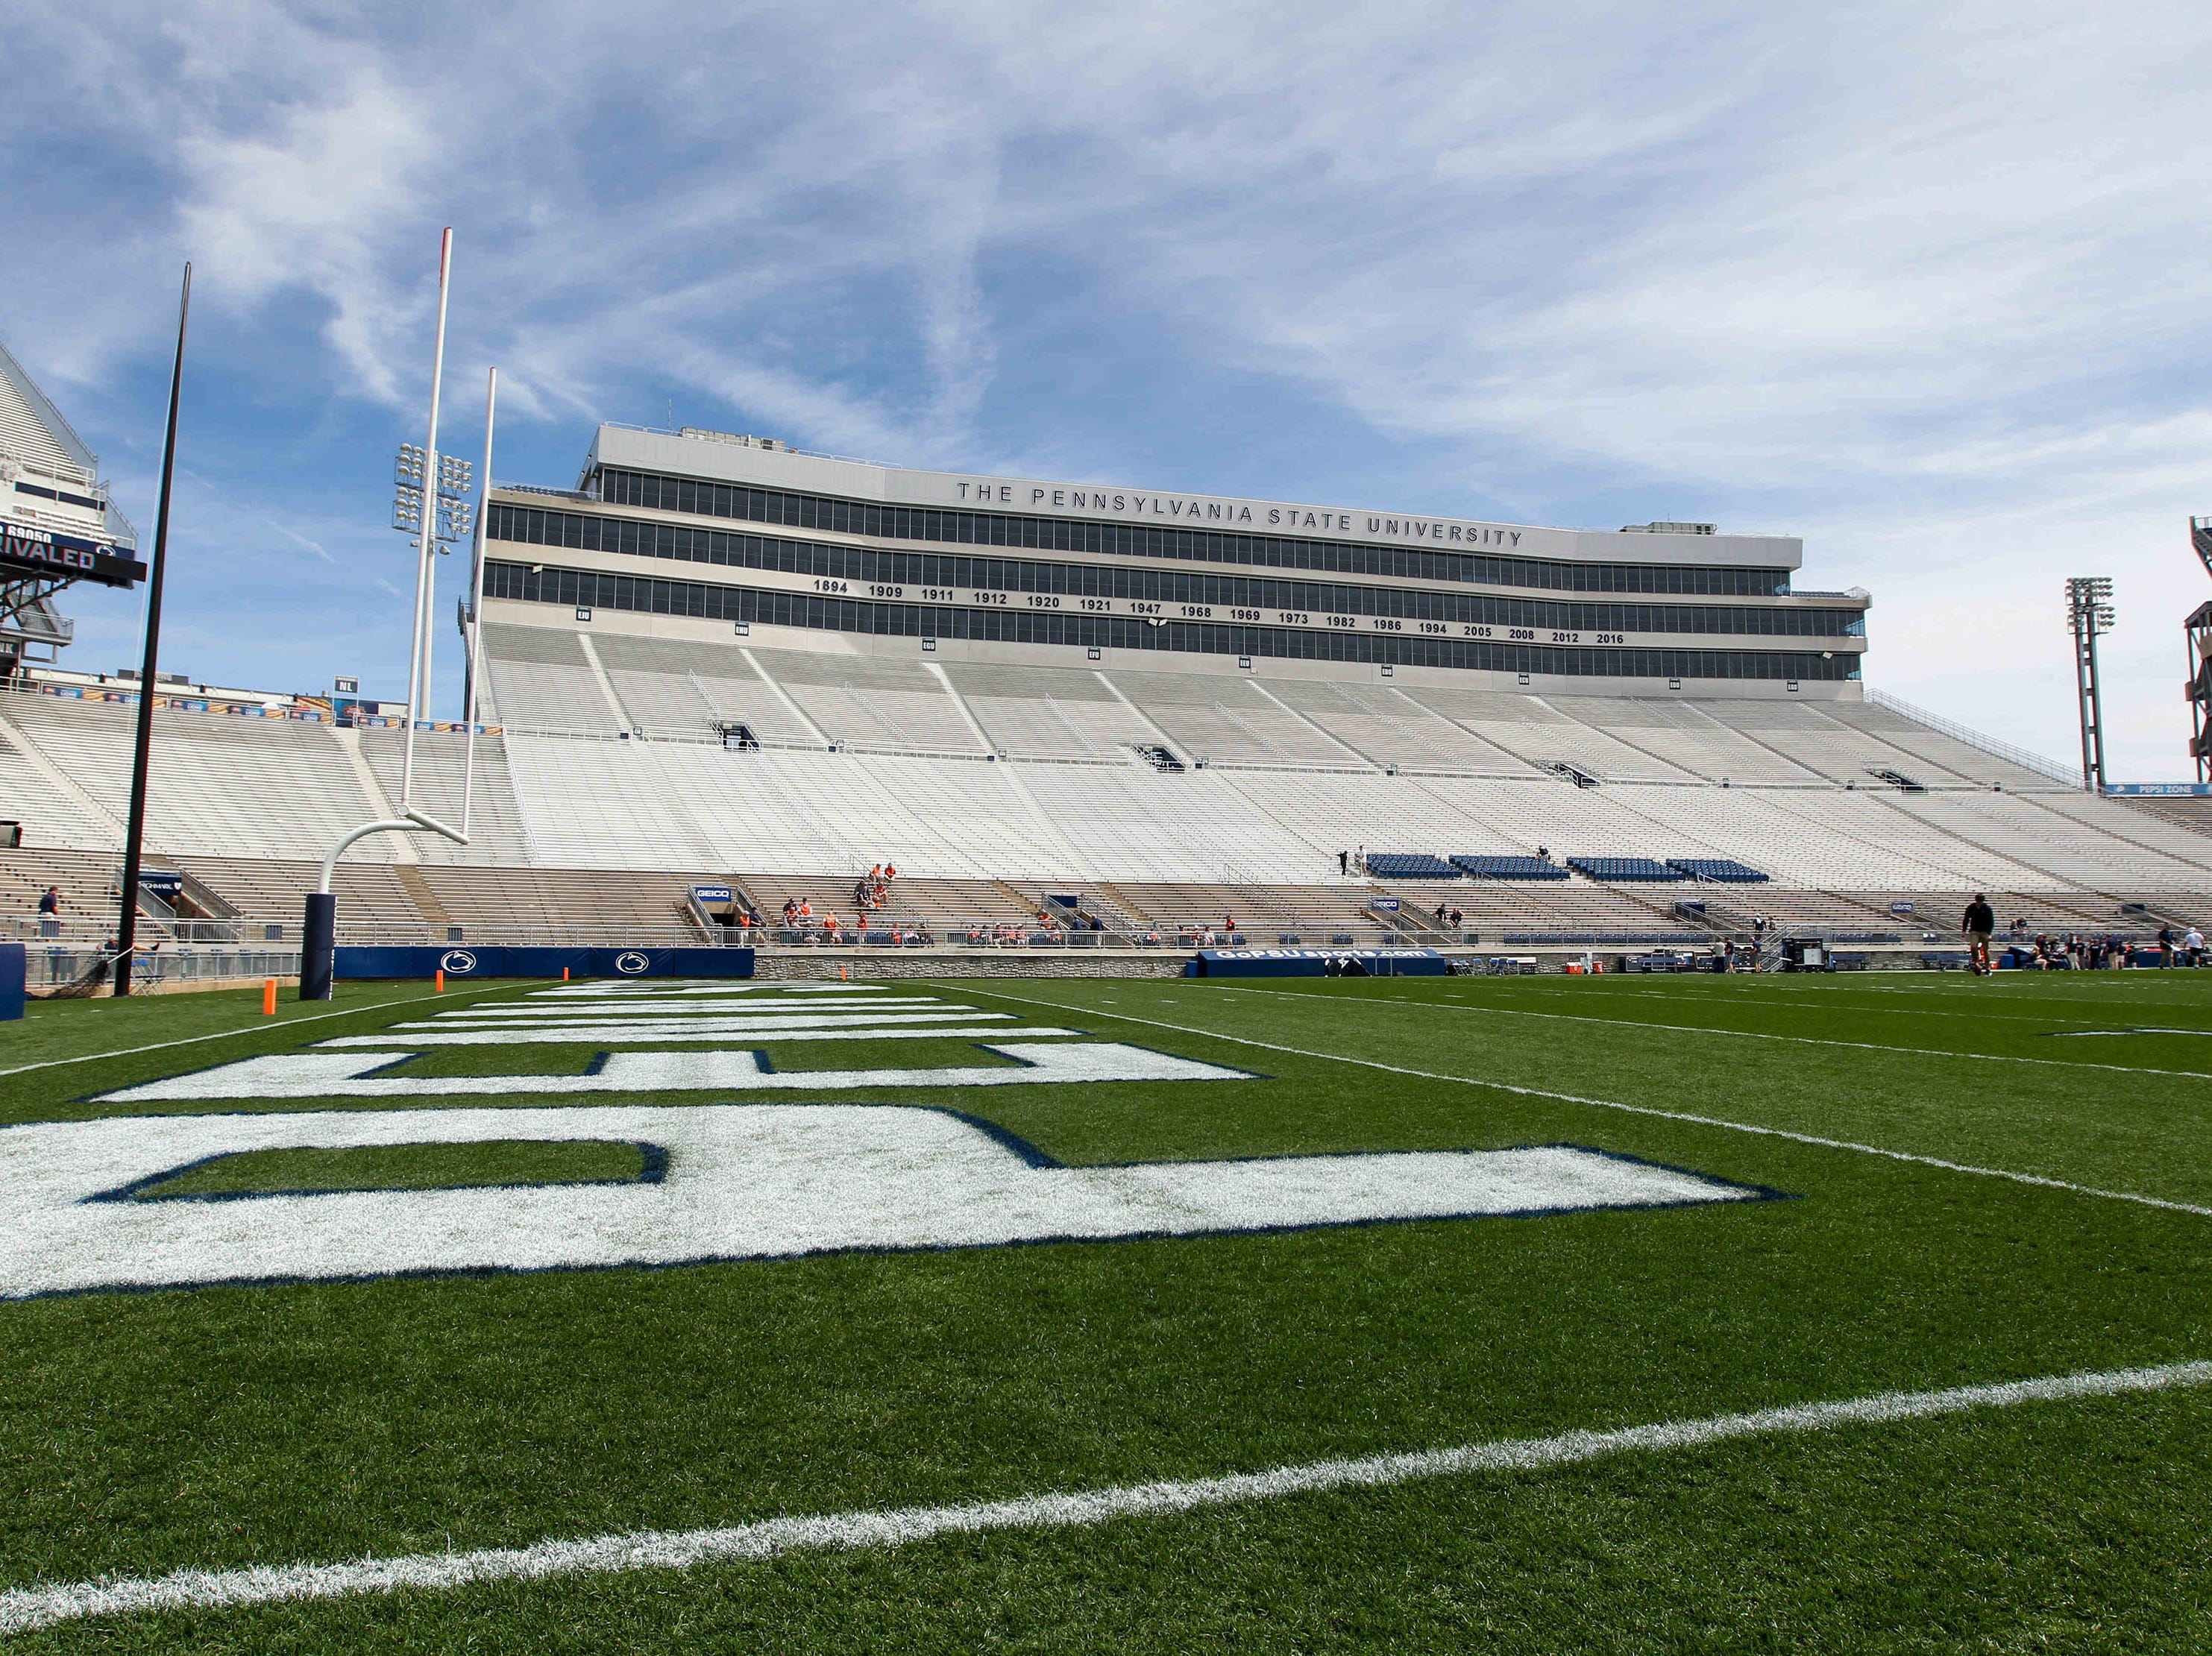 Apr 13, 2019; University Park, PA, USA; A general view of Beaver Stadium prior to the Blue White spring game at Beaver Stadium. Mandatory Credit: Matthew O'Haren-USA TODAY Sports